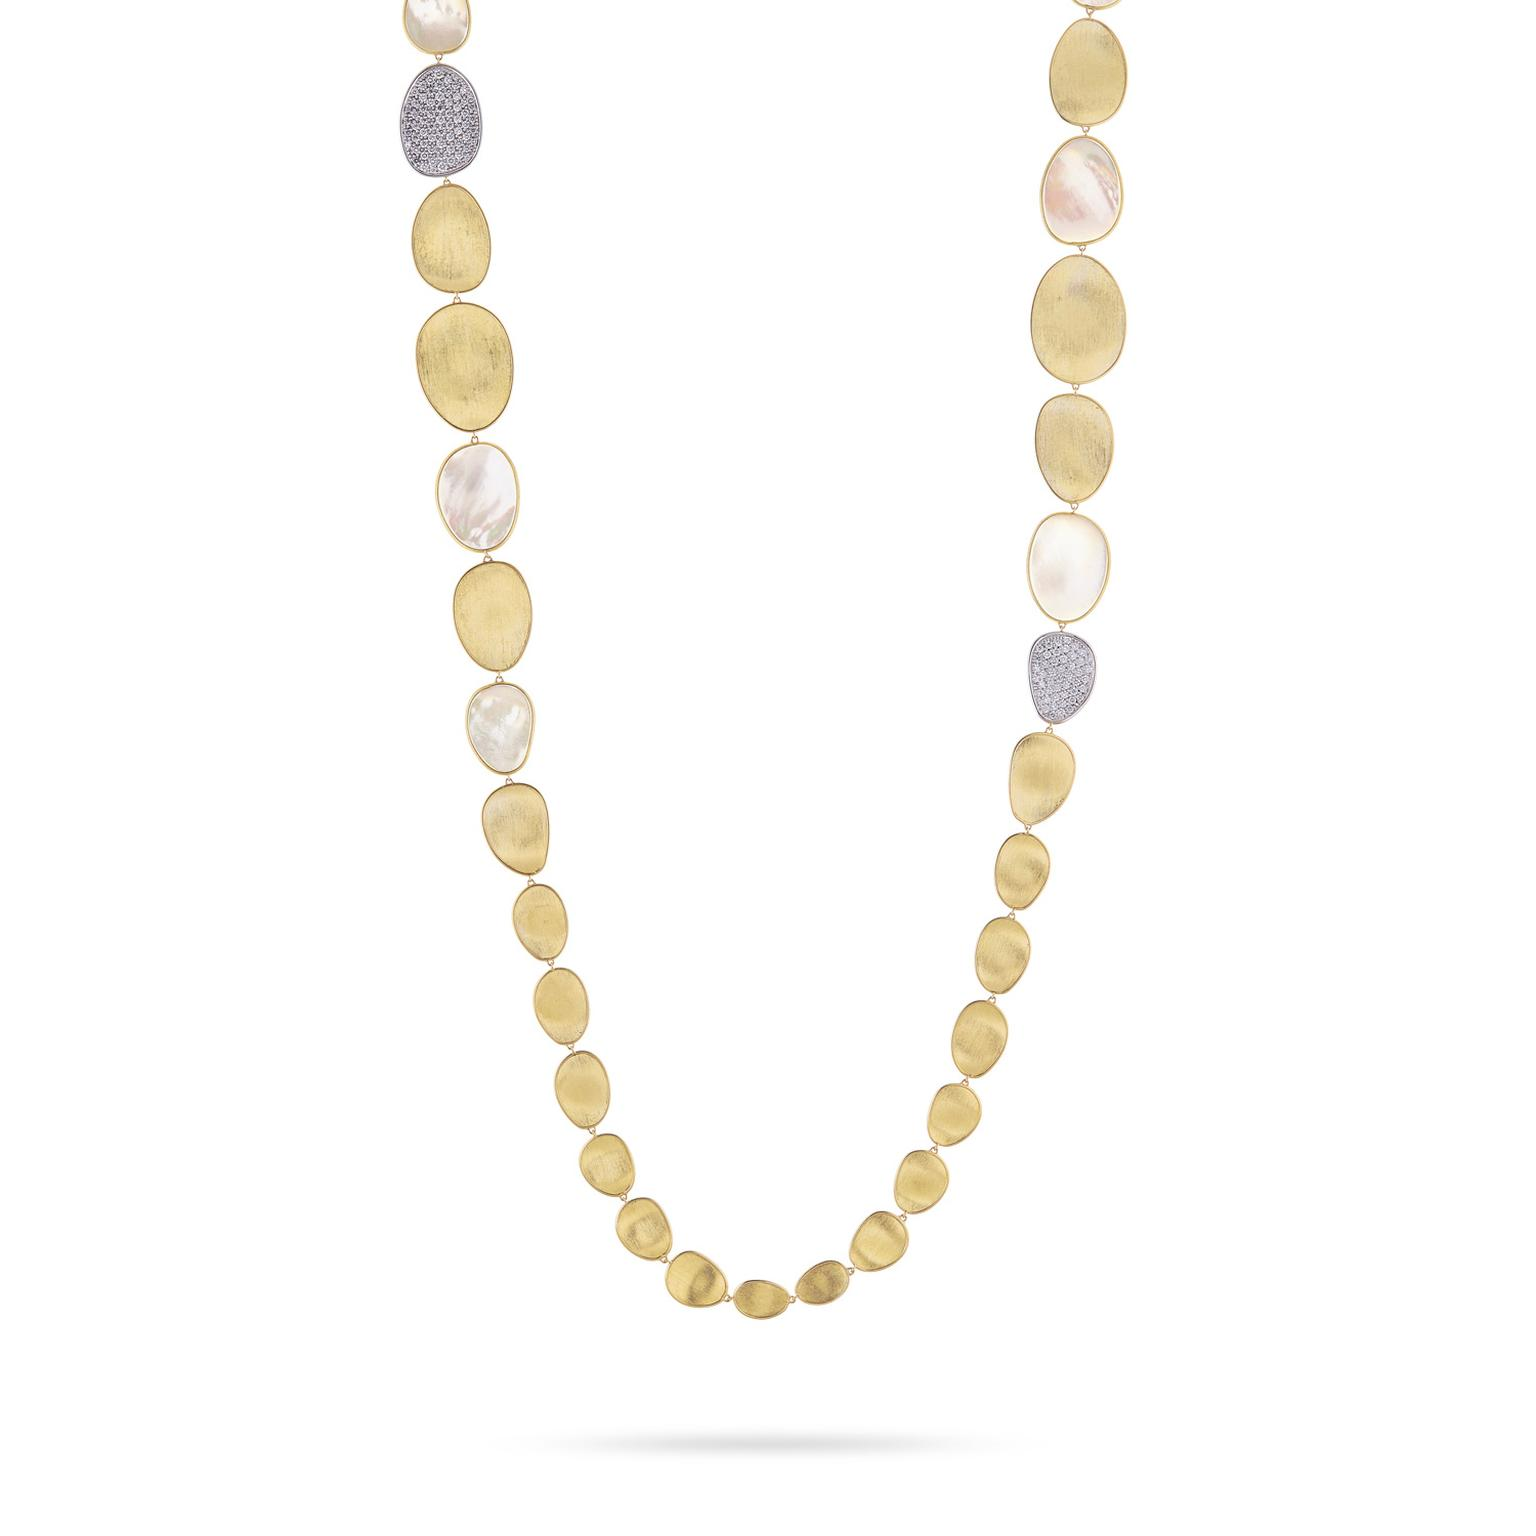 Marco Bicego Lunaria Sautoir with mother-of-pearl